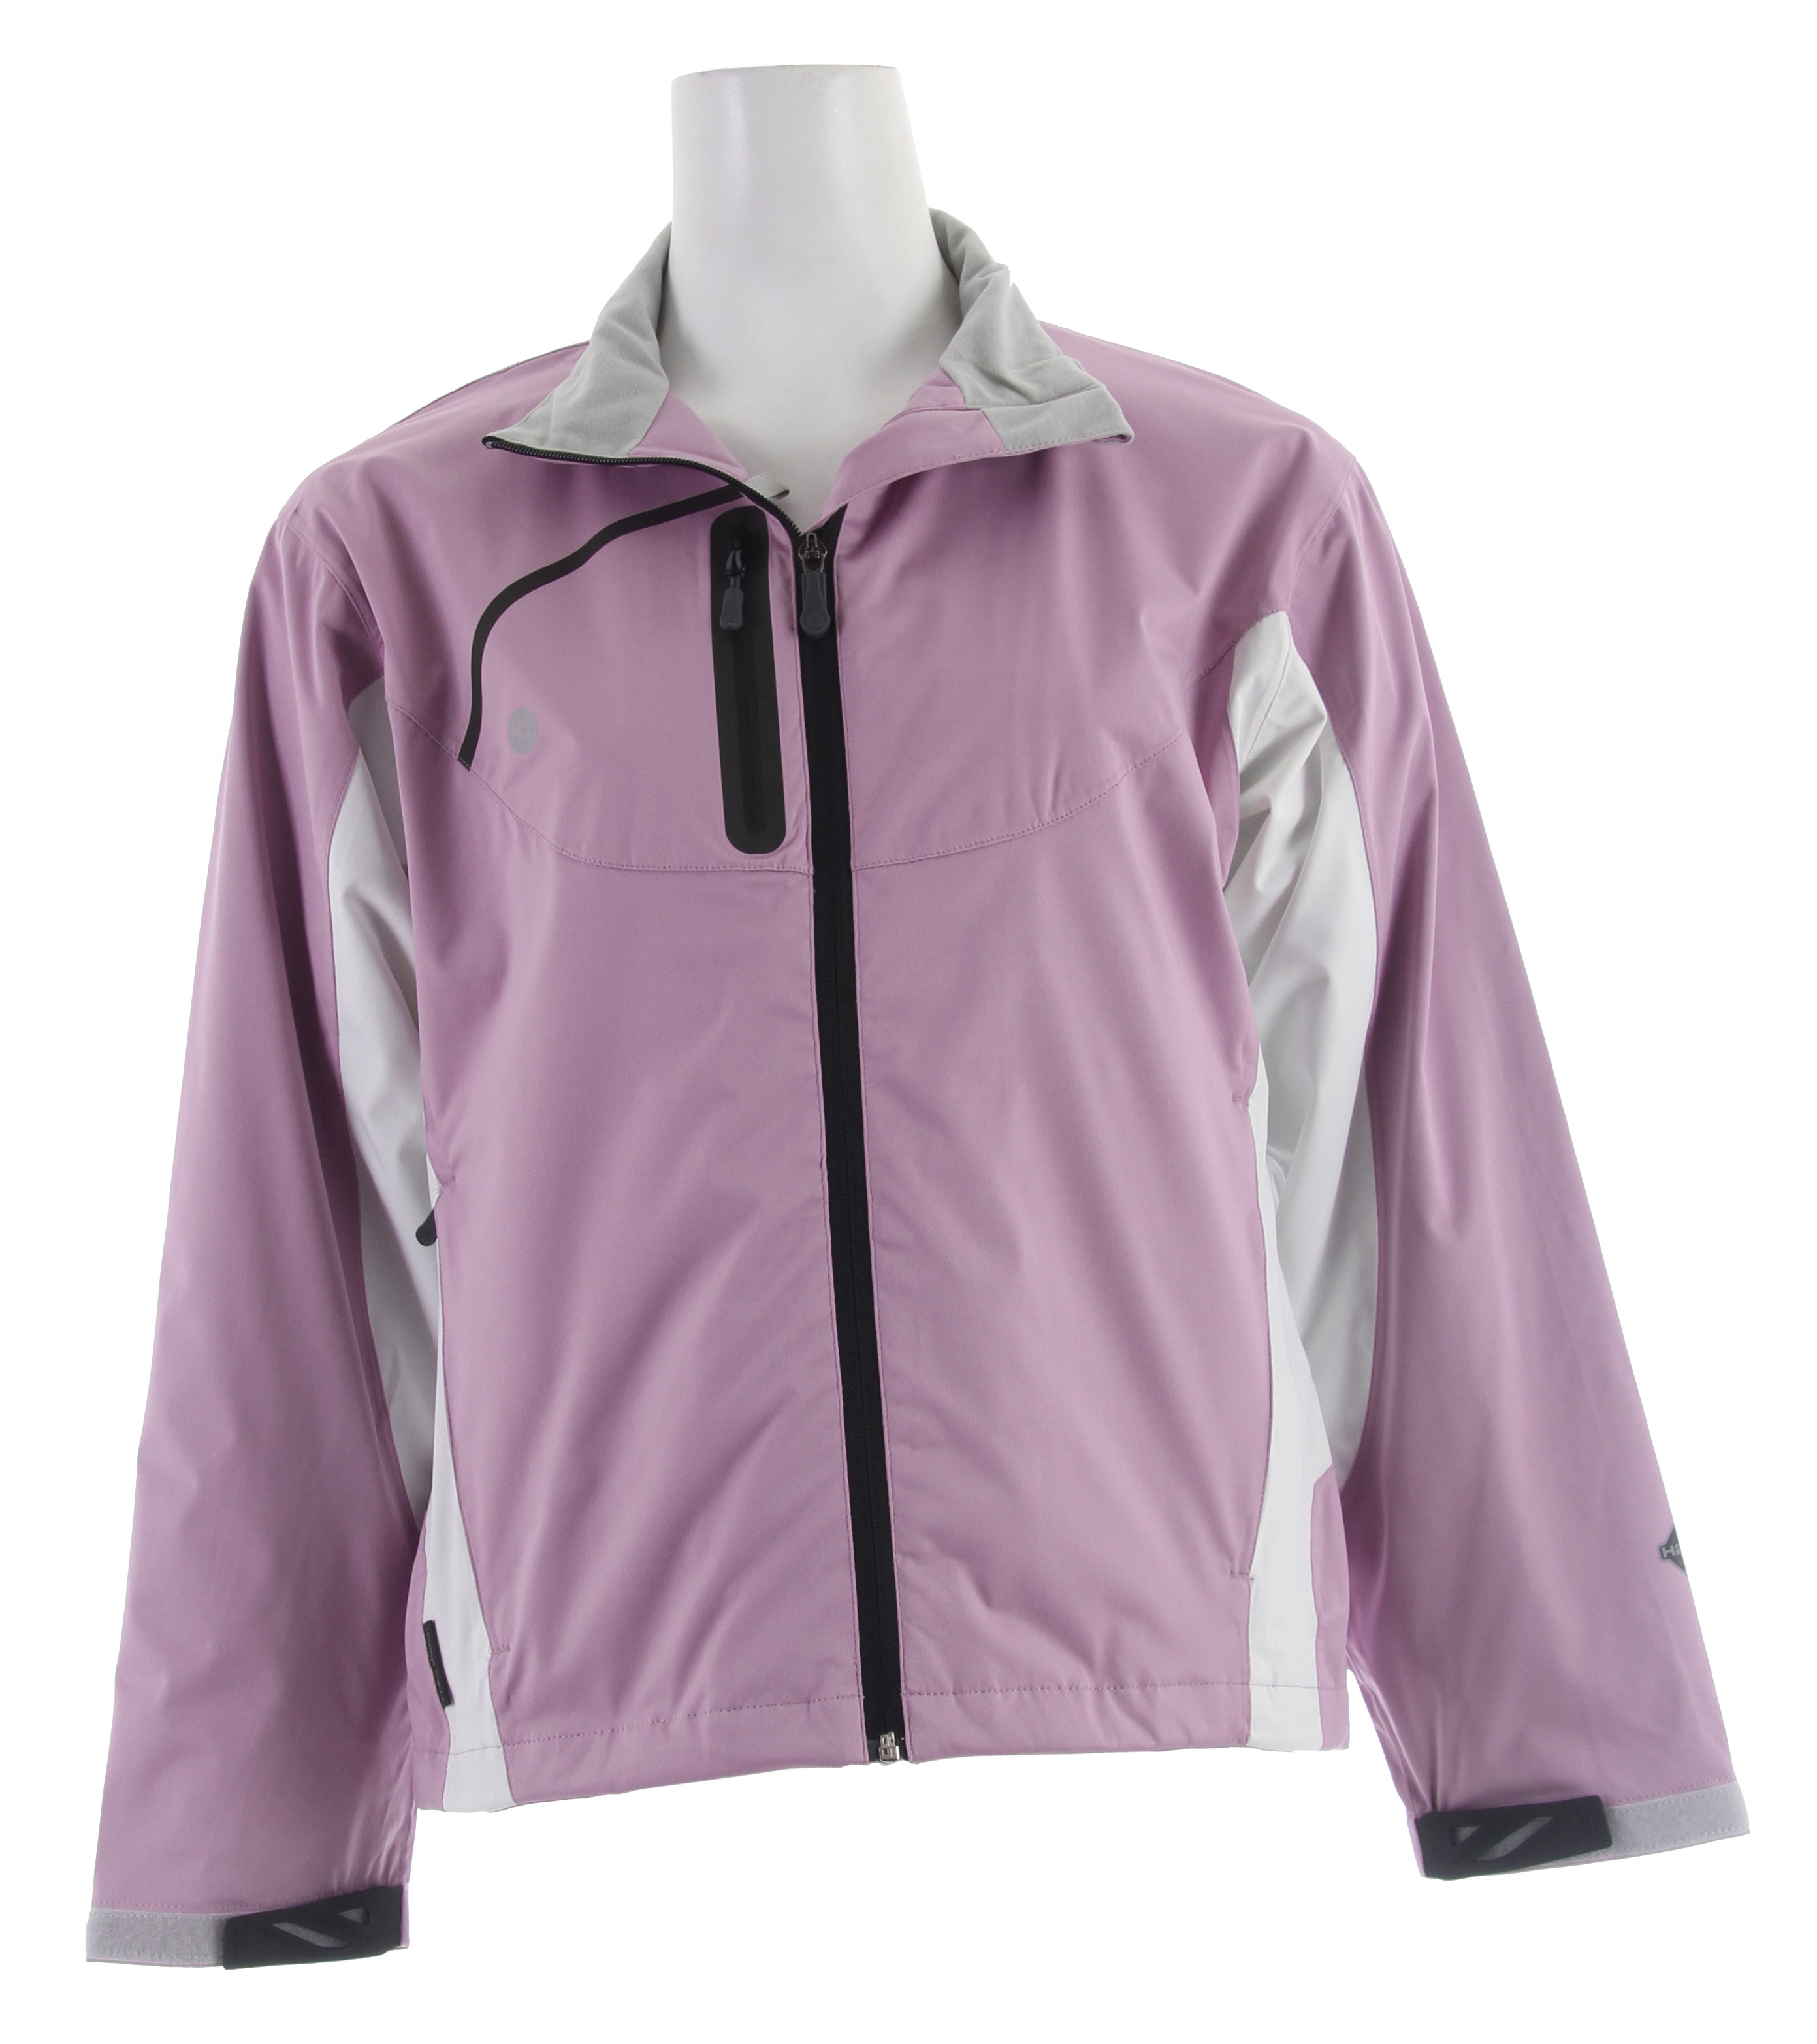 Stormtech Trident Microflex Storm Shell Jacket Lavender Herb/White - $44.95